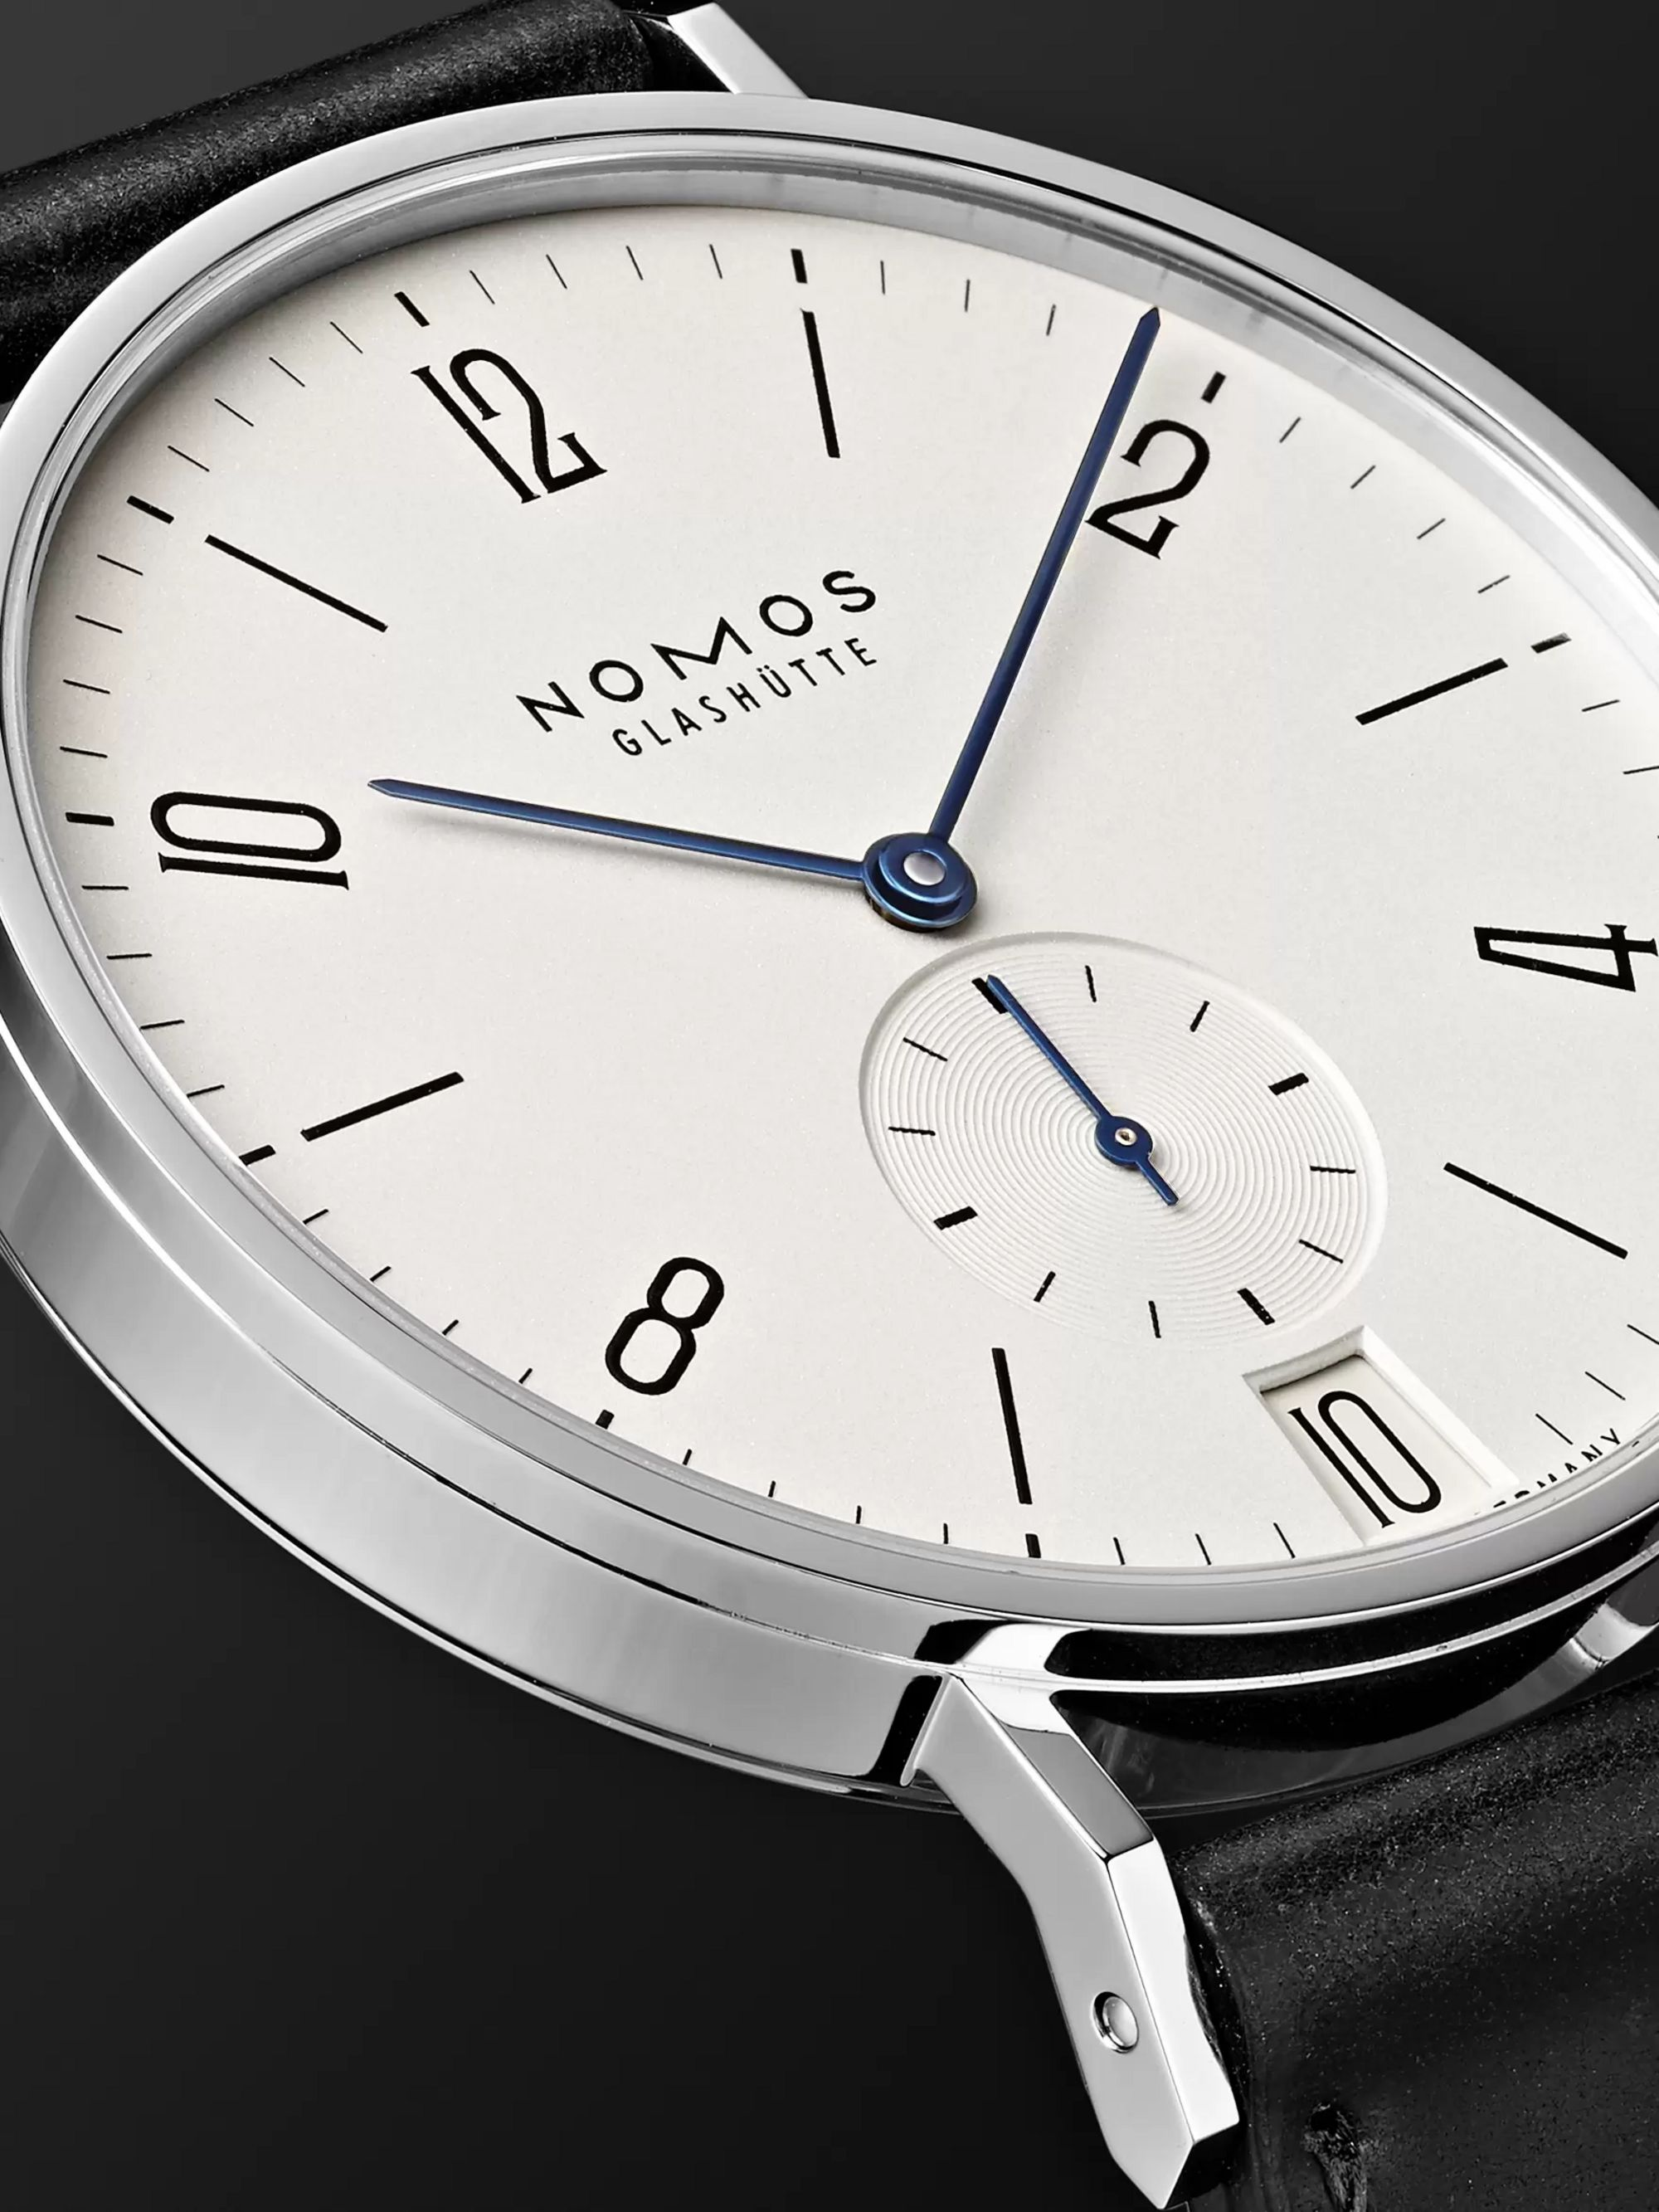 NOMOS Glashütte Tangente 38mm Datum Stainless Steel and Leather Watch, Ref. No. 130